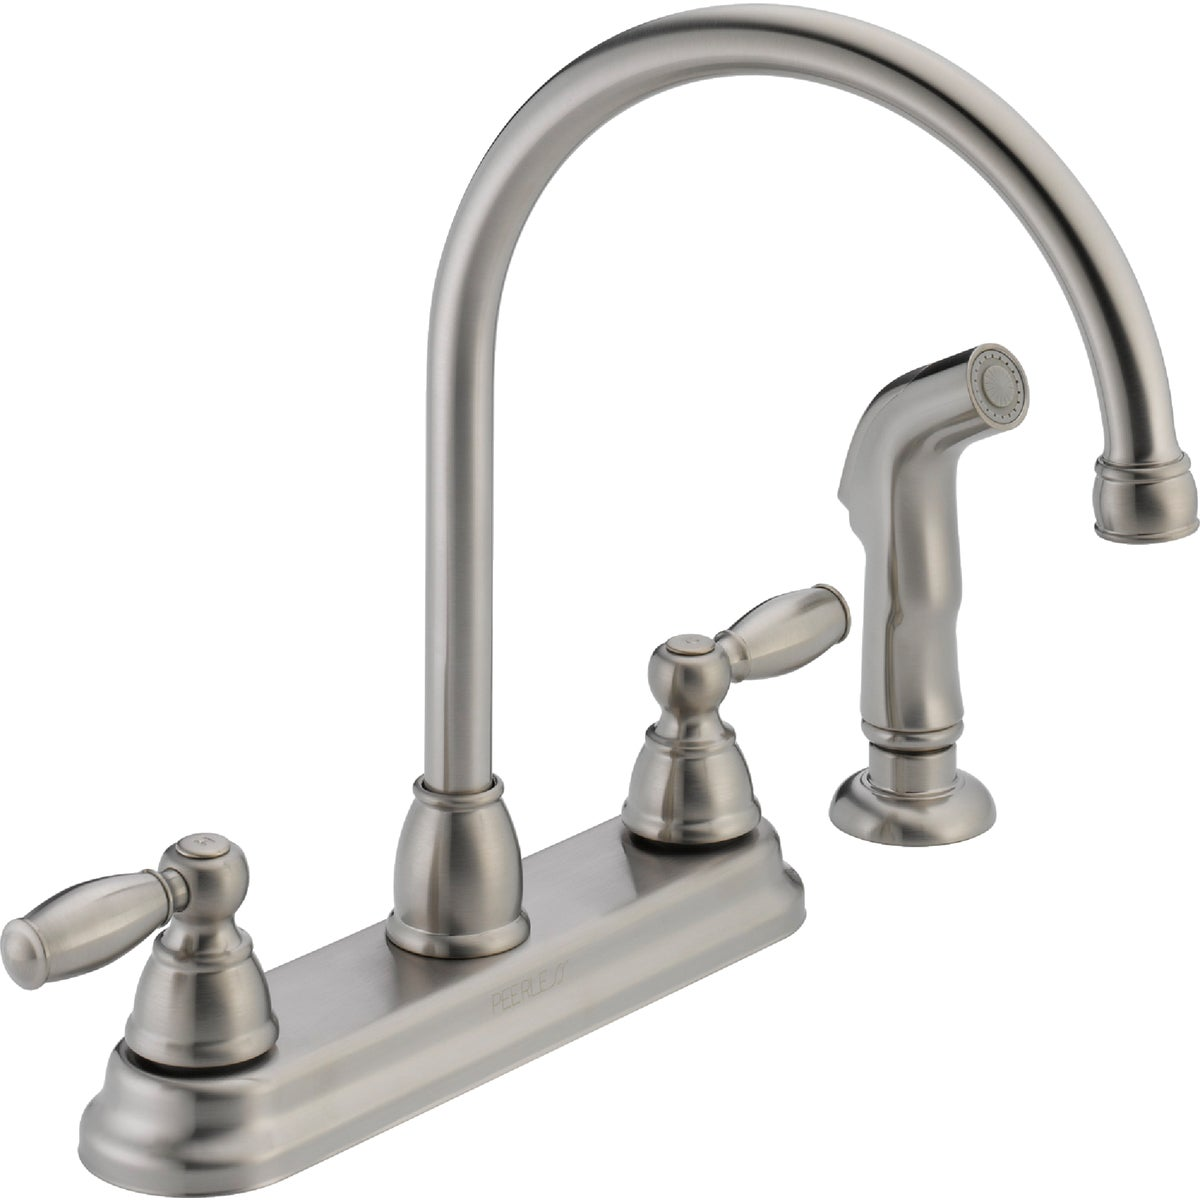 2H SS KIT FAUCET W/SPRY - P299575LF-SS by Delta Faucet Co